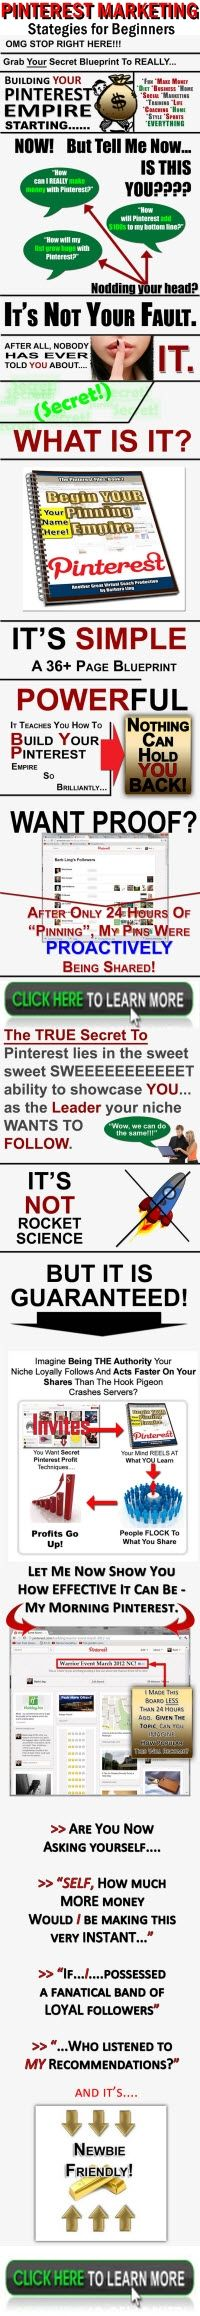 JUST RELEASED! [HOT] #Pinterest SEXY Affiliate Profits Energizer: Earn More Commissions Than Trading Tim Tebow! Pinterest Marketing Guide that Anybody can Learn How to Make the Most out of Pinterest. - survcast.com